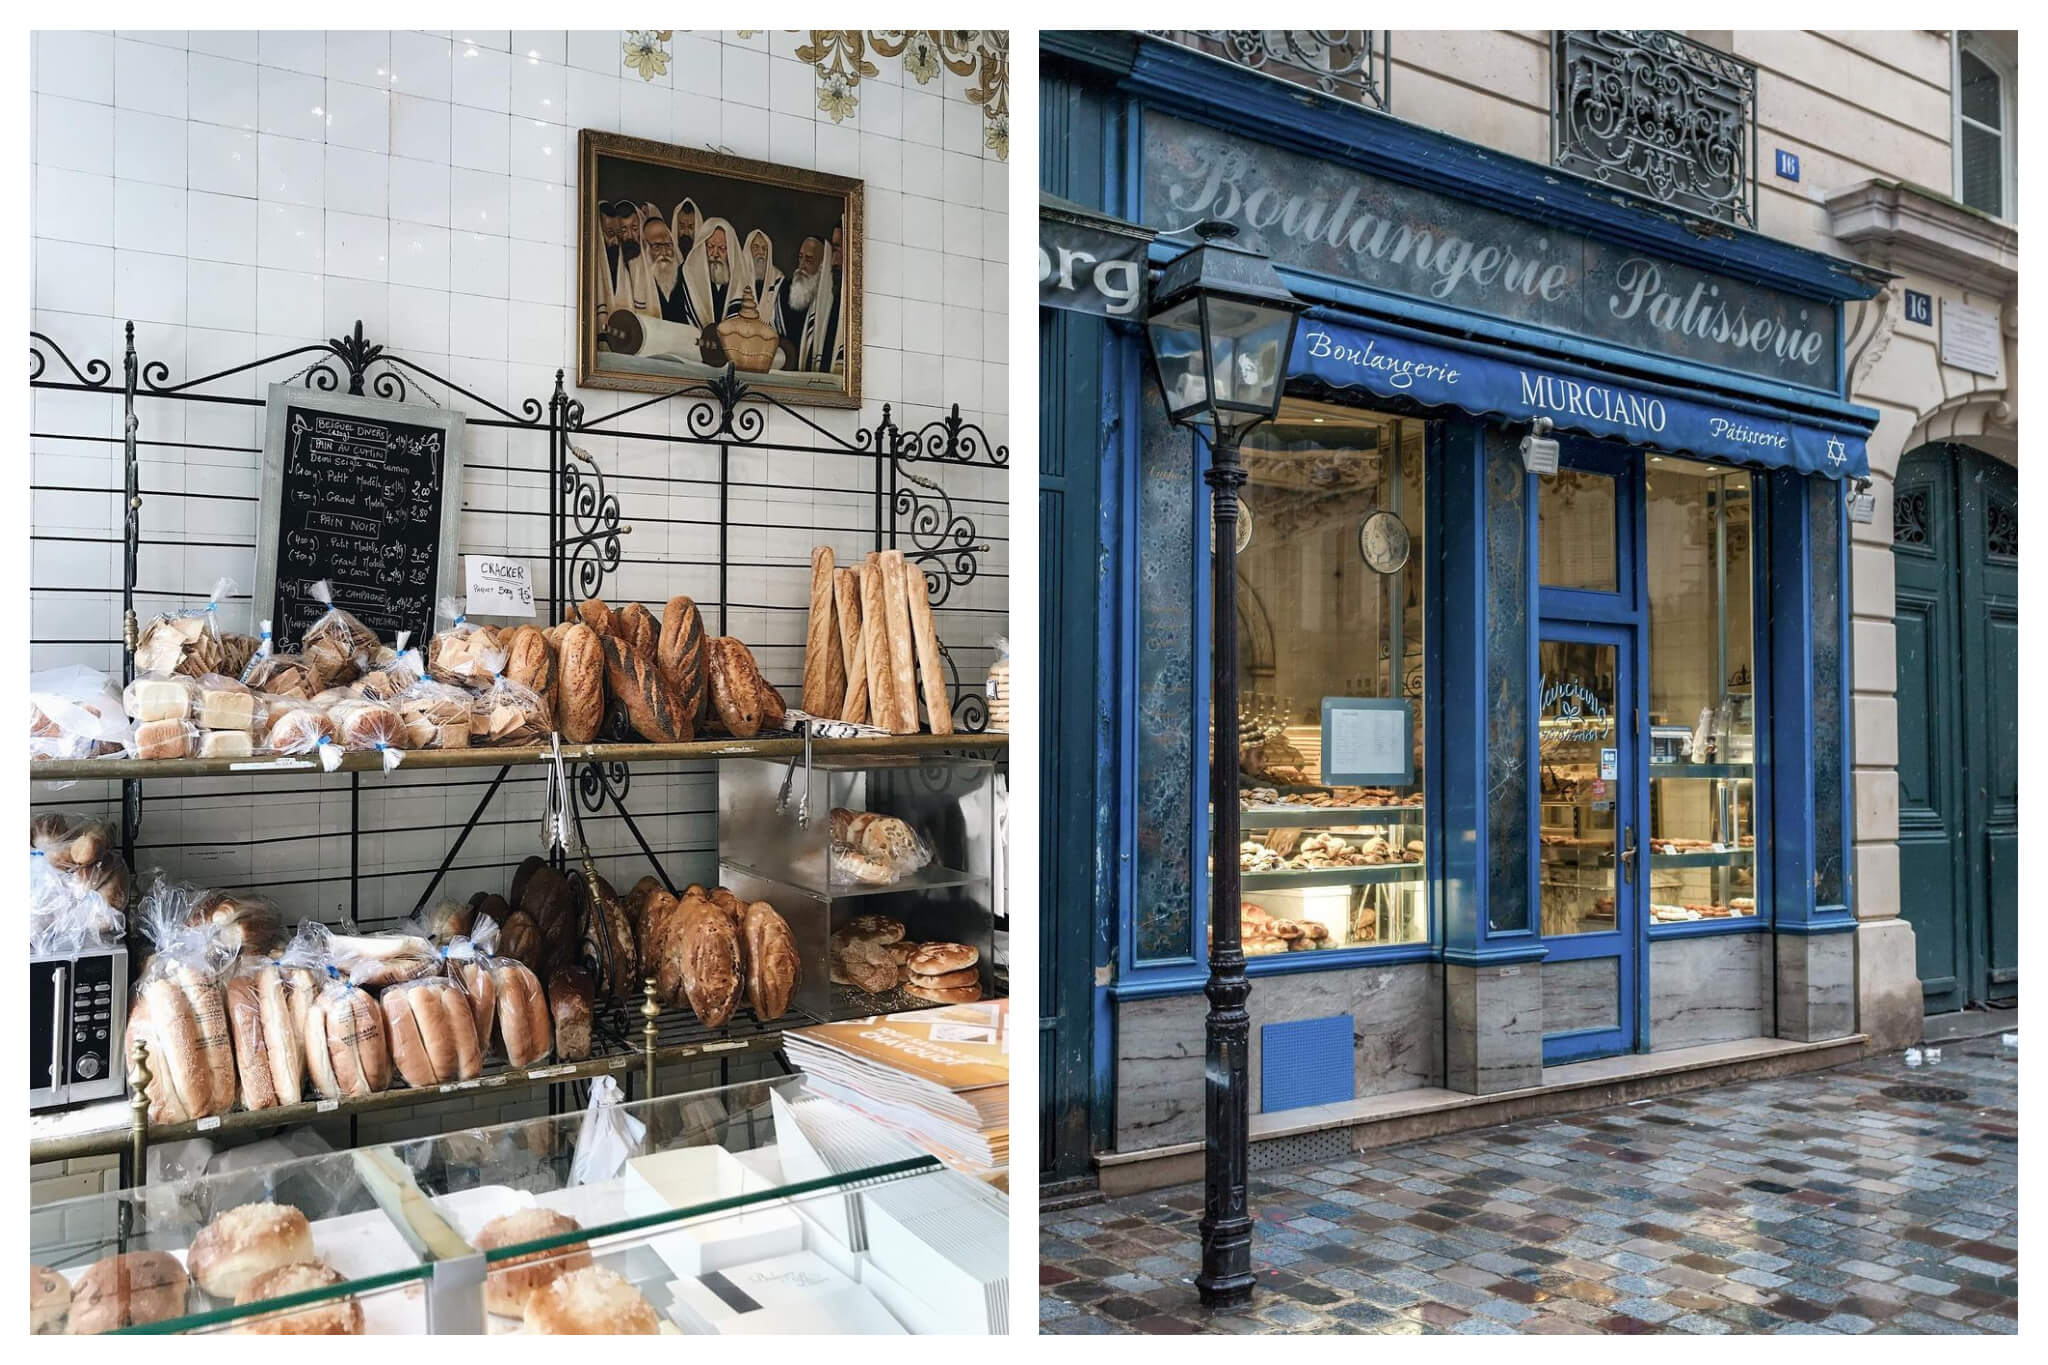 Left: Assorted bread in a bakery. Right: The outside of Boulangerie Murciano in Le Marais.